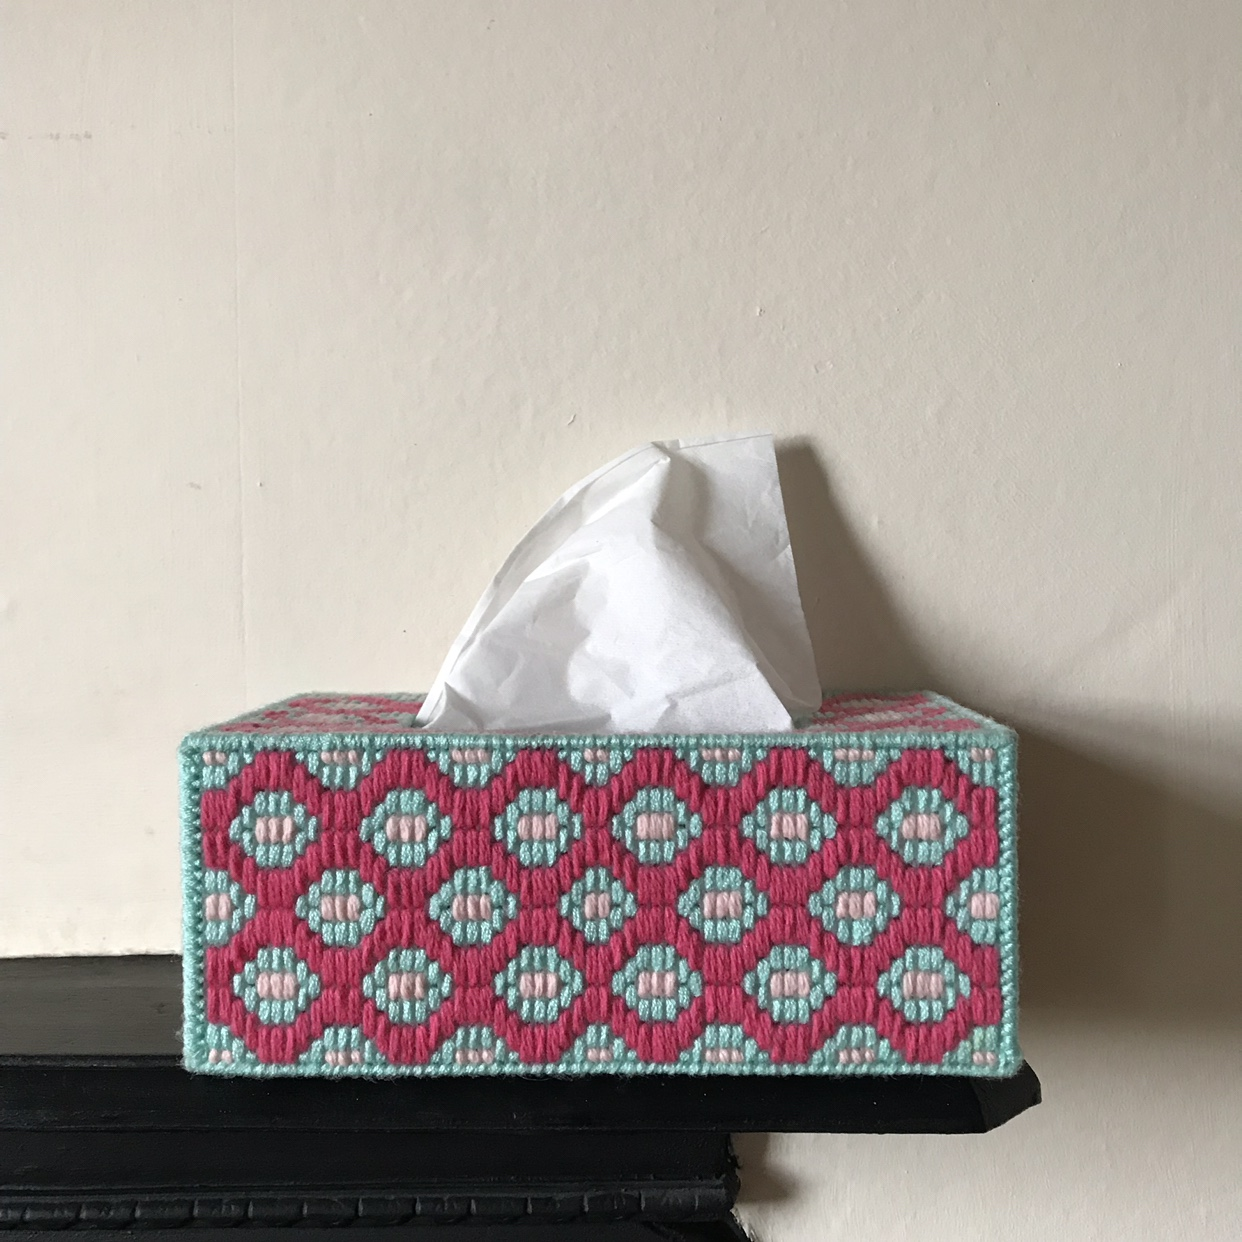 Groovy Hand Made Crochet Tissue Box Cover Pink Depop